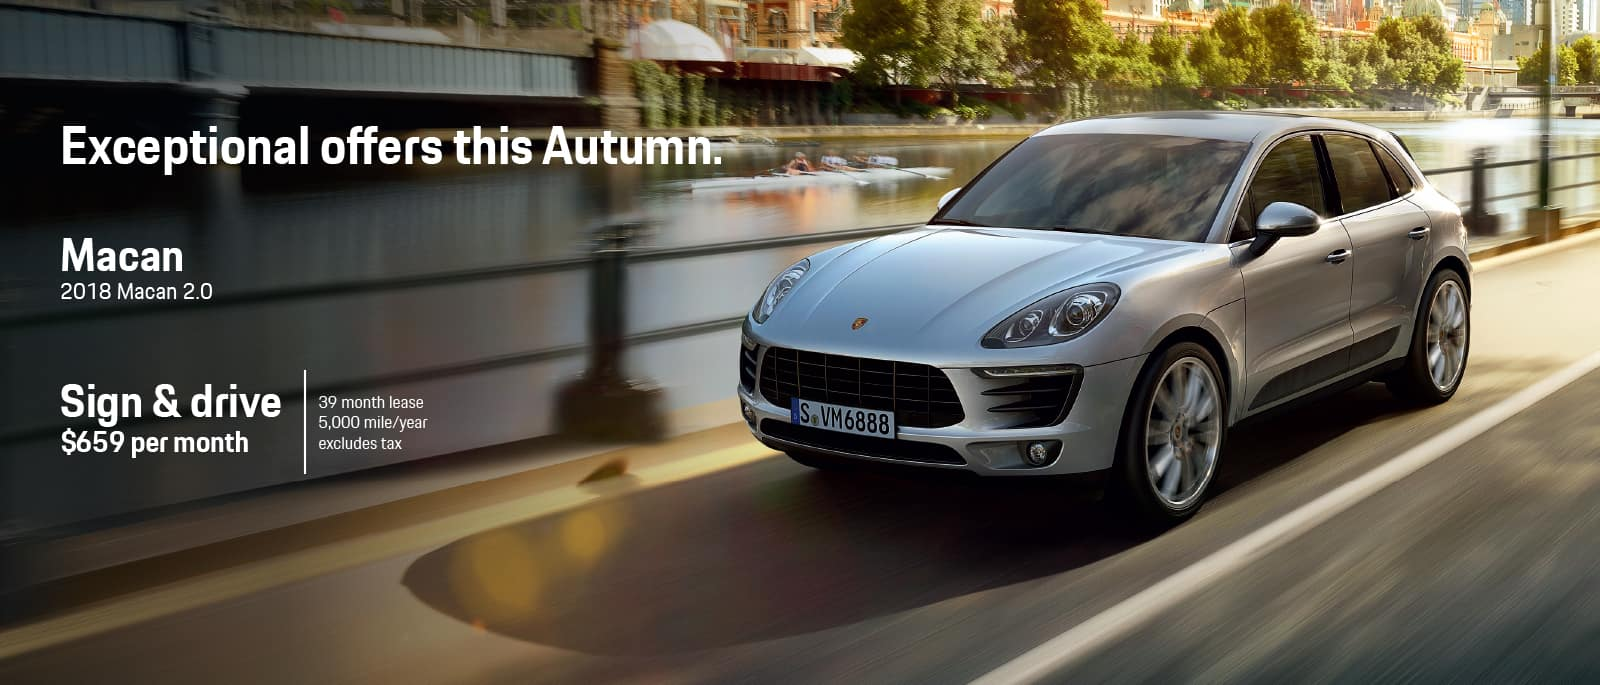 Macan lease offer